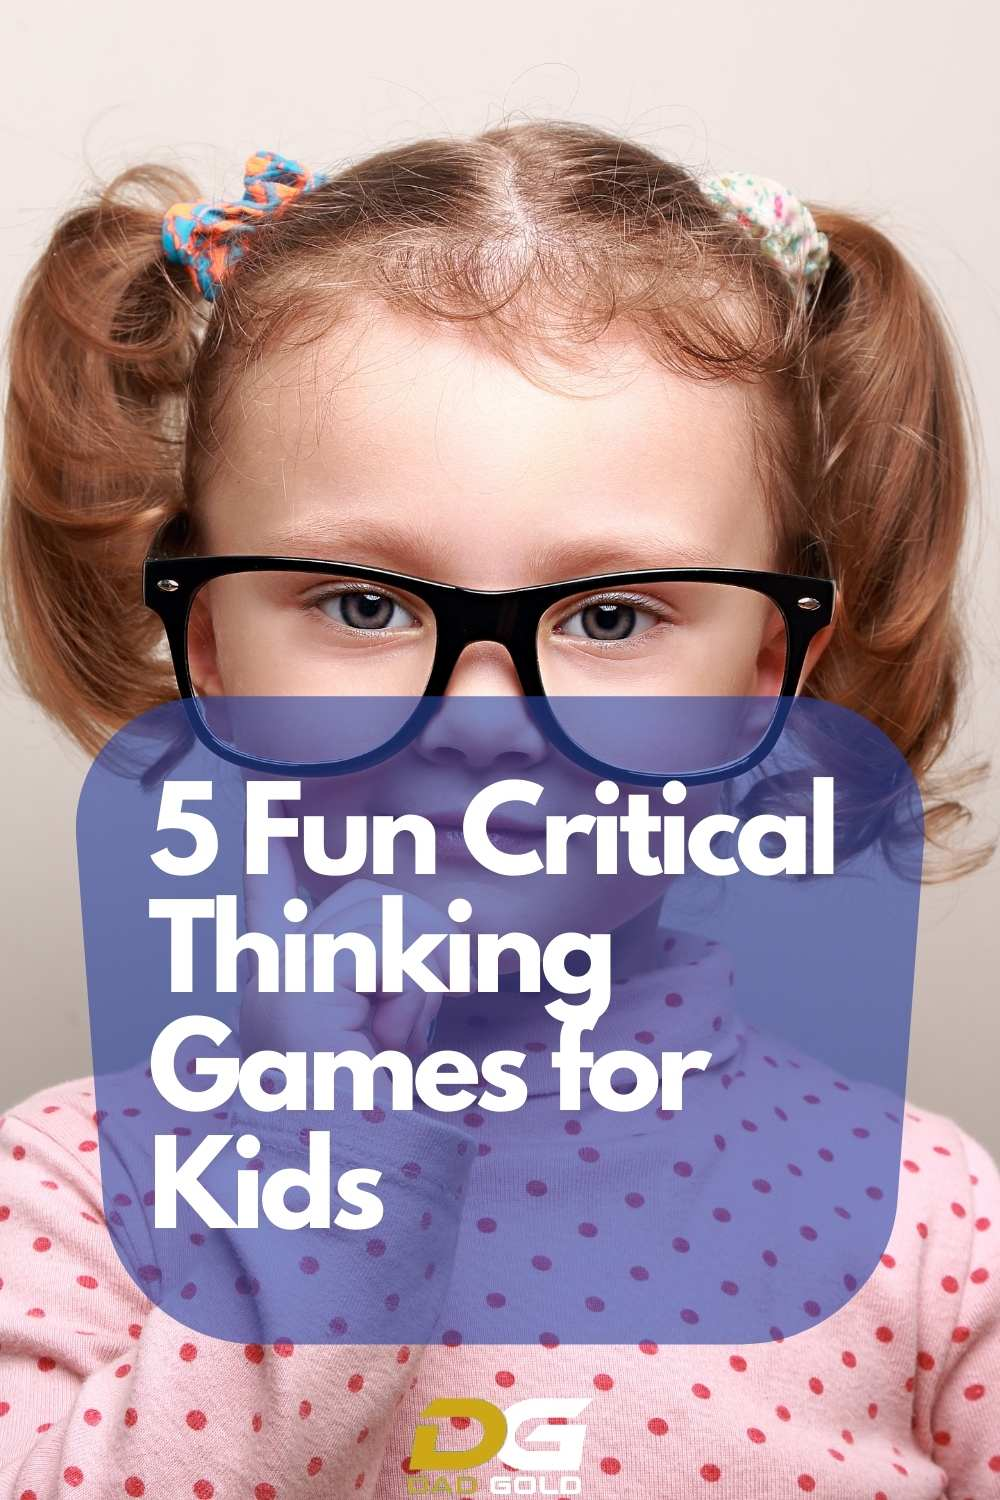 5 fun Critical Thinking Games for Kids dadgold parenting tips (1)